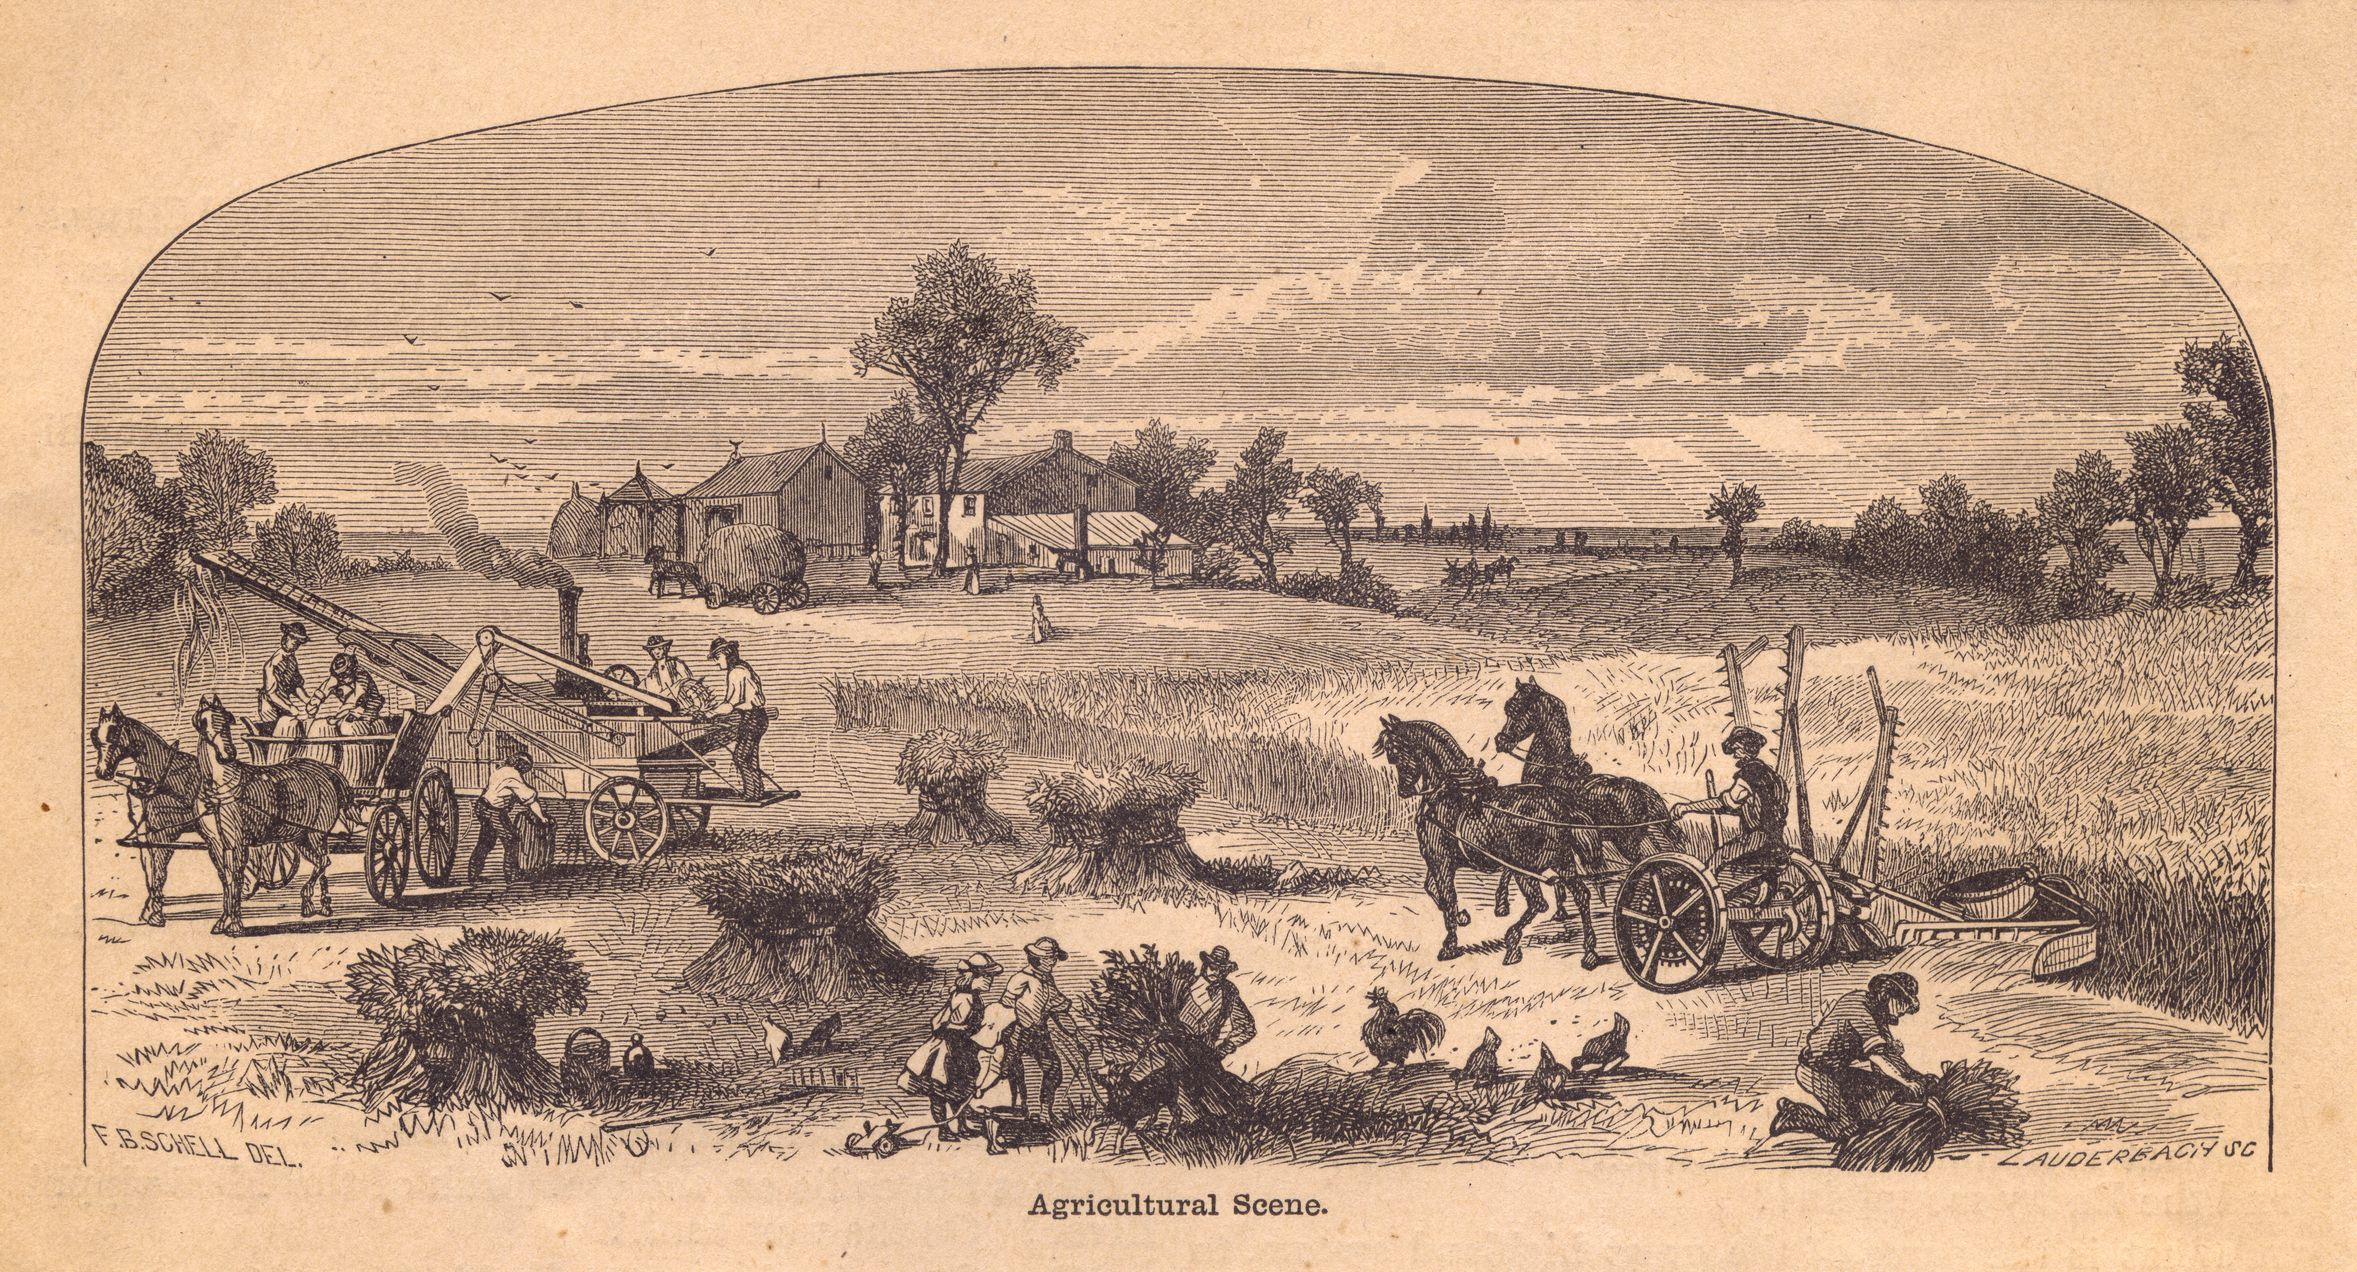 Old, Black and White Illustration of Agricultural Scene, From 1800's